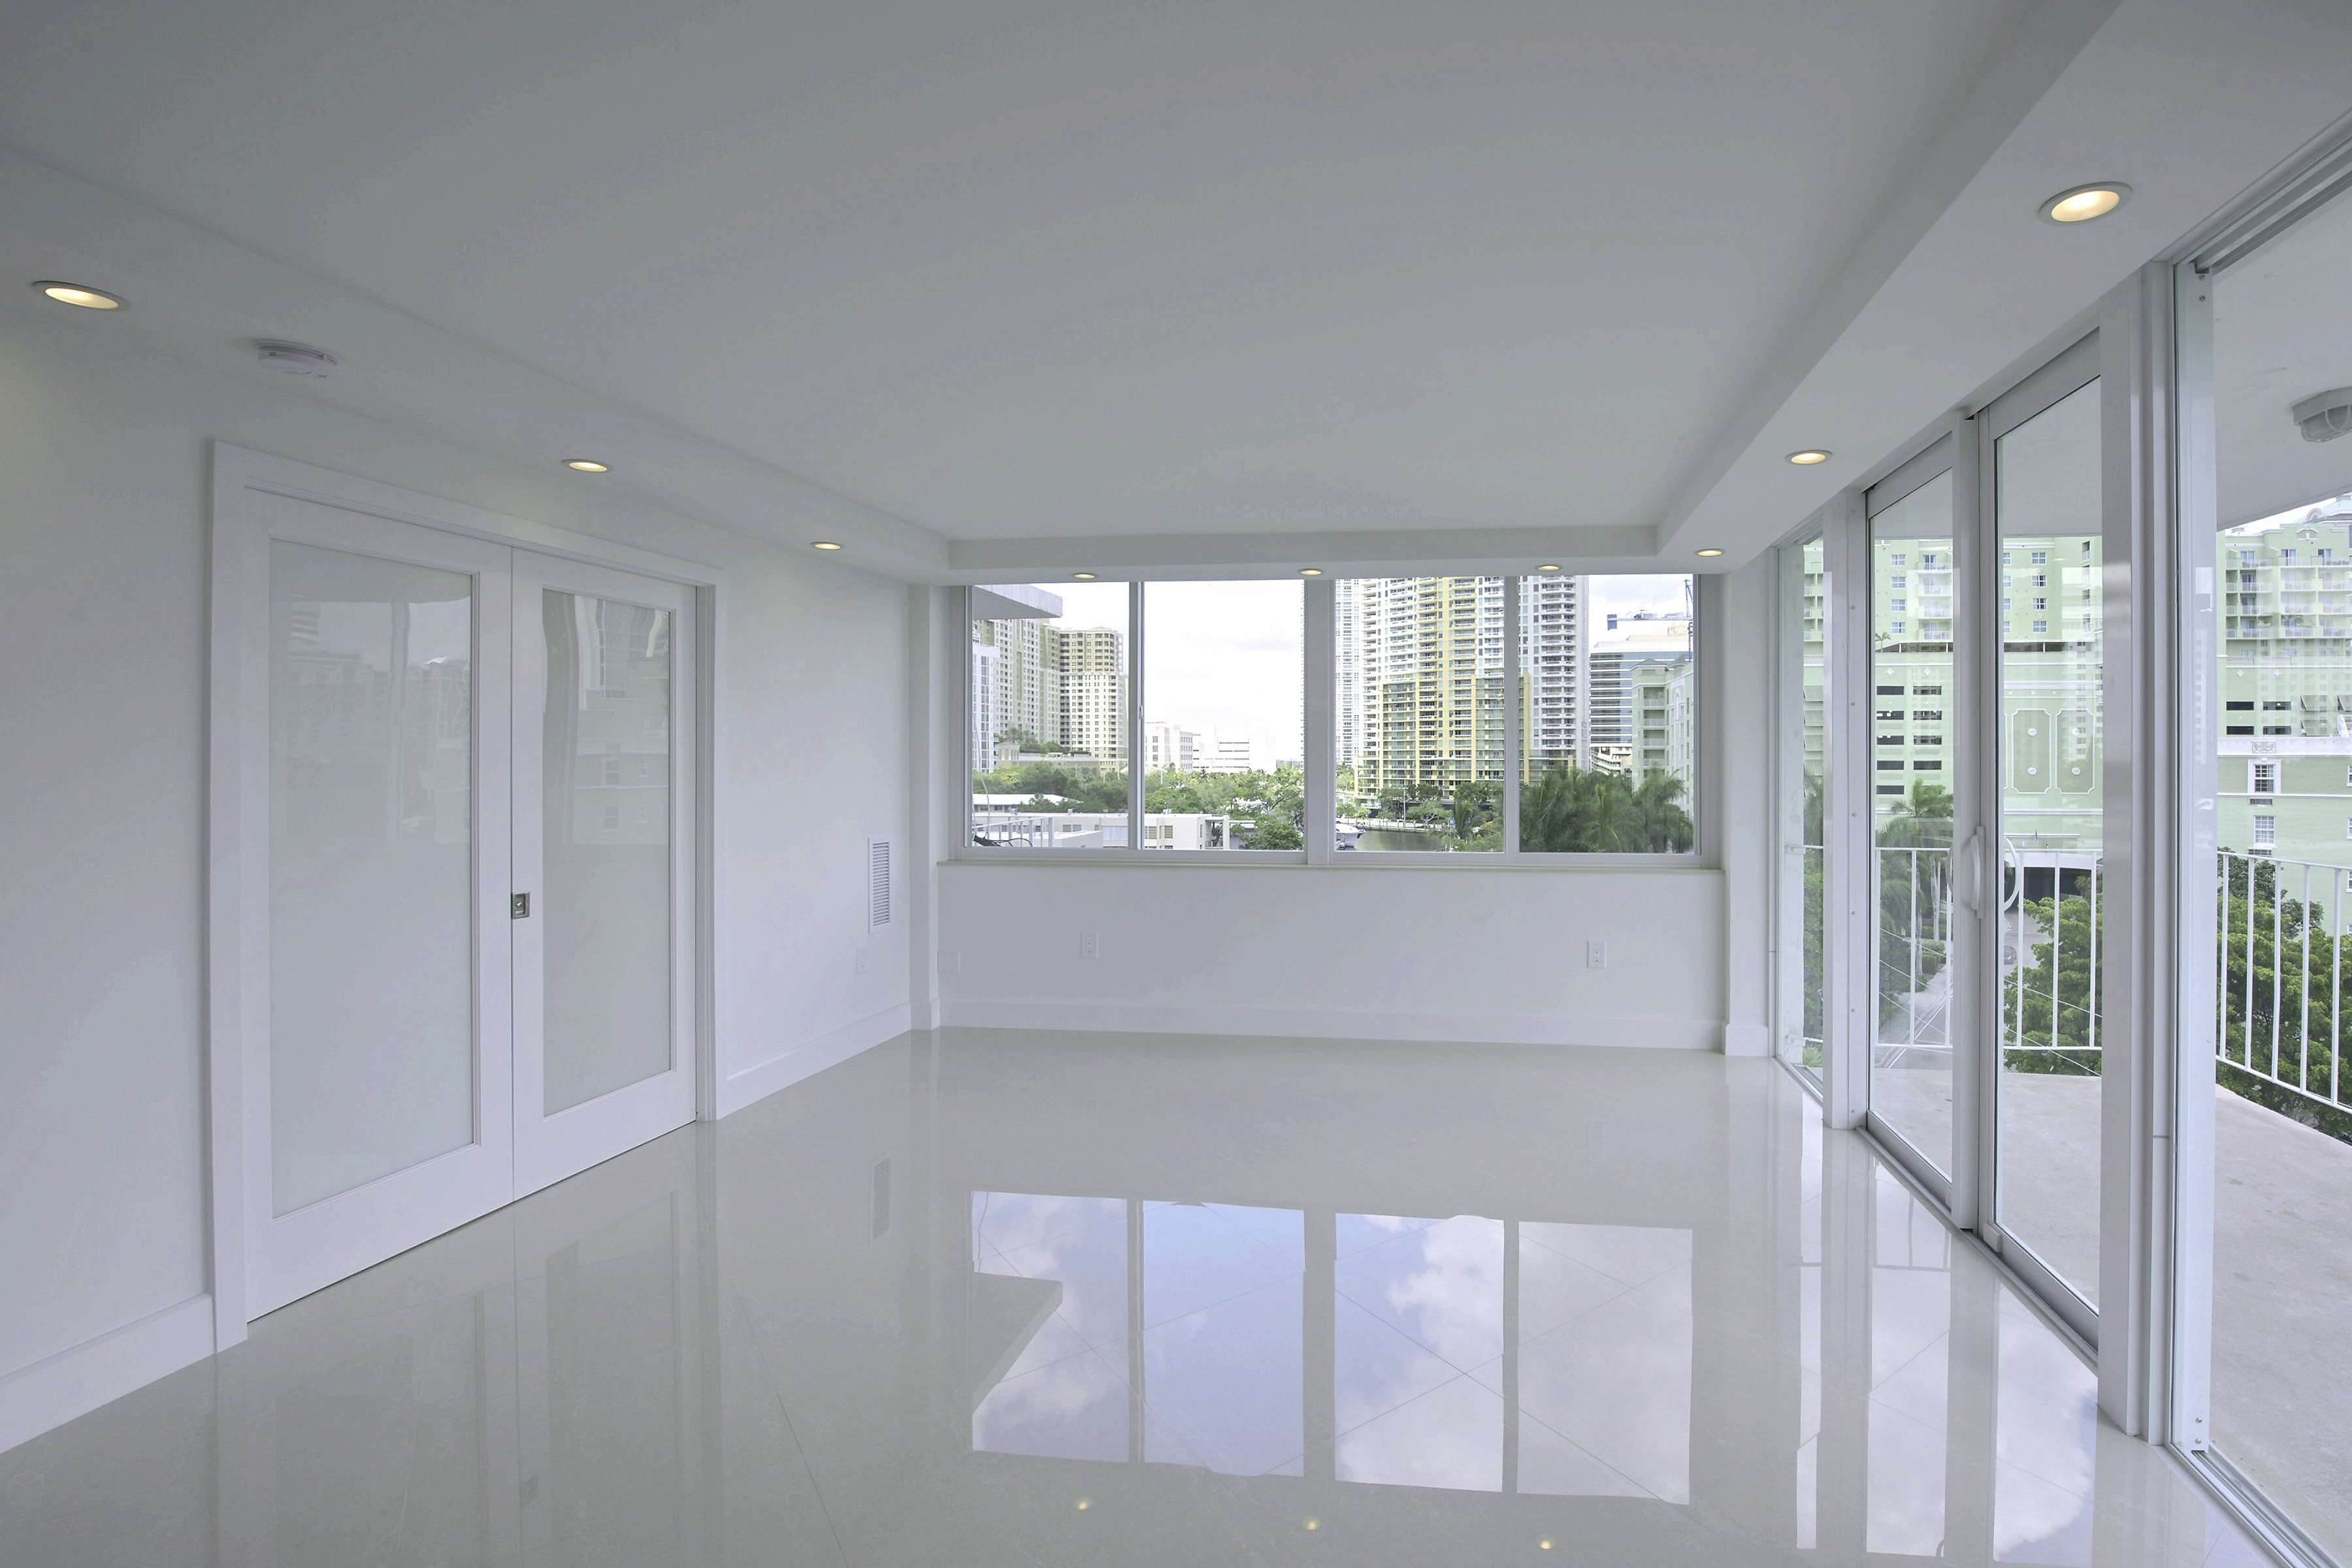 Buying a Miami home without hurricane protection? PACE may be your answer.